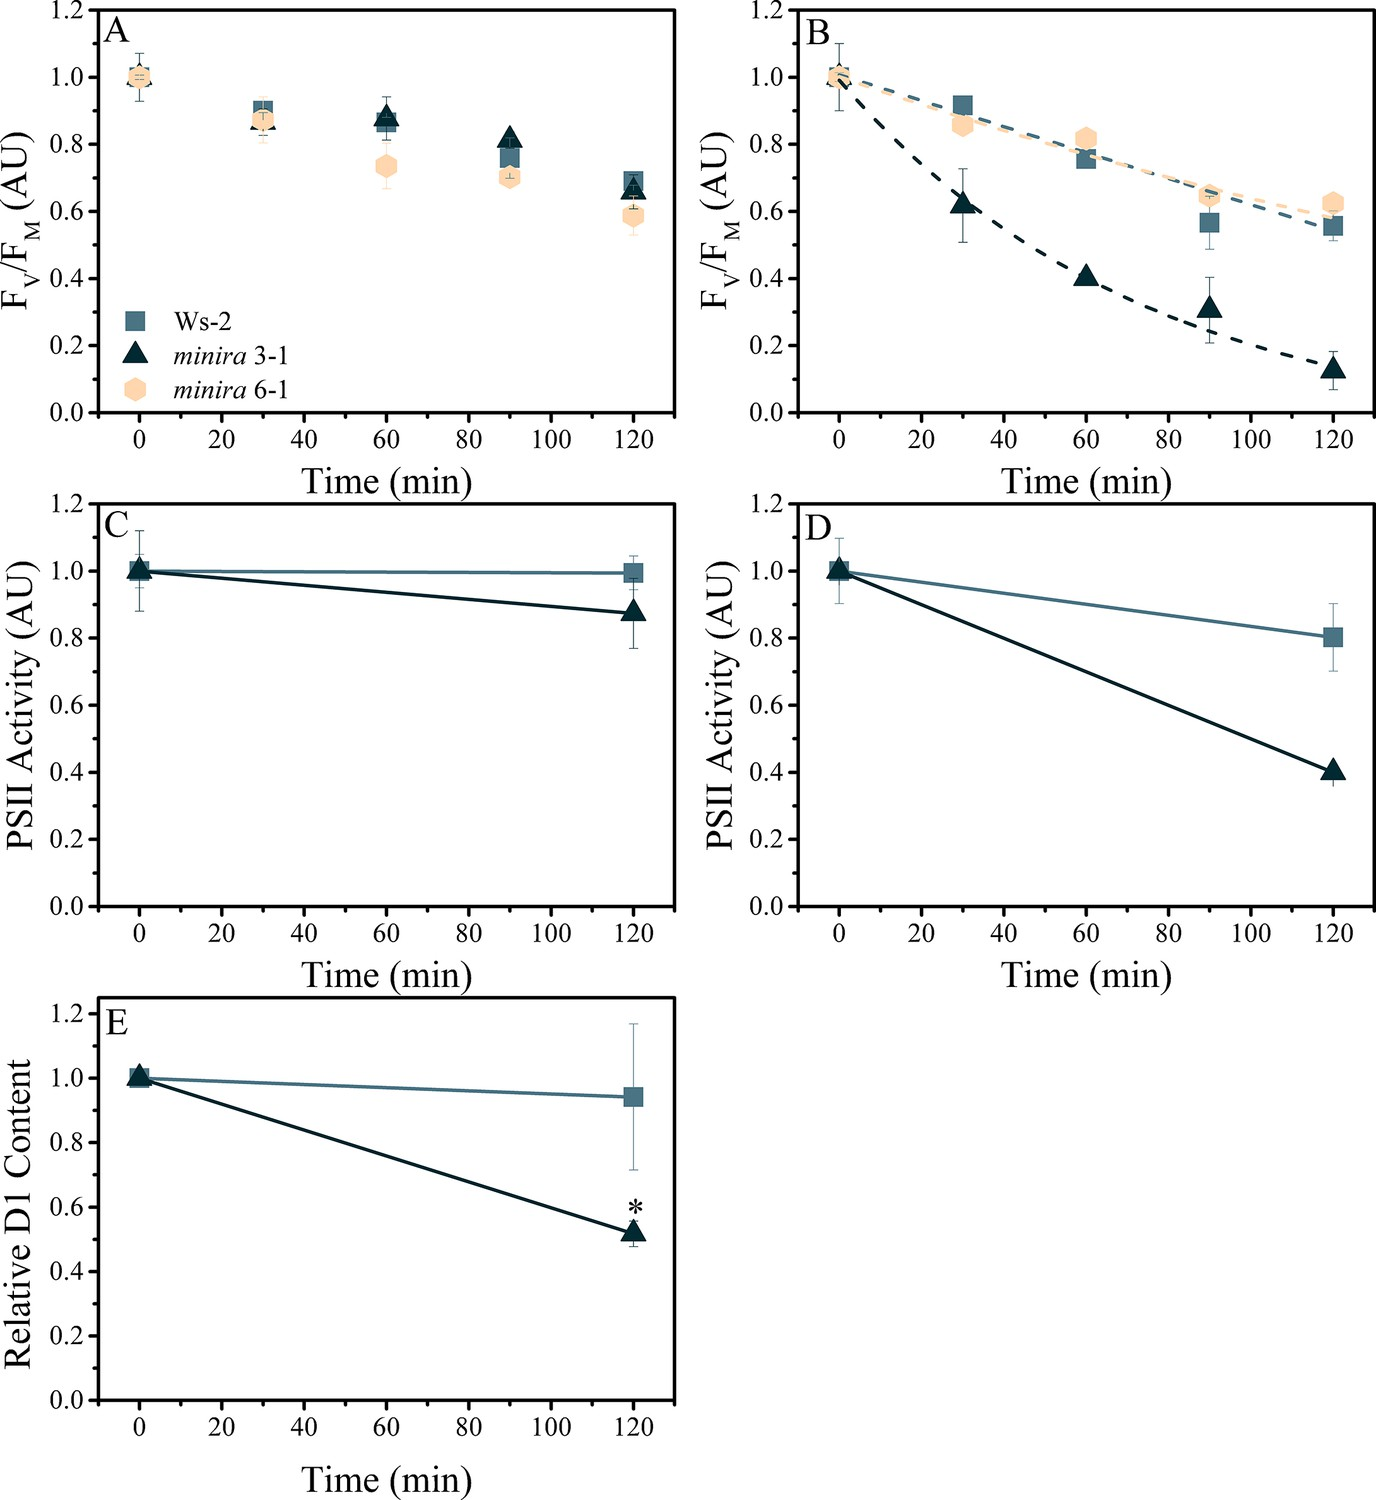 Limitations to photosynthesis by proton motive force induced